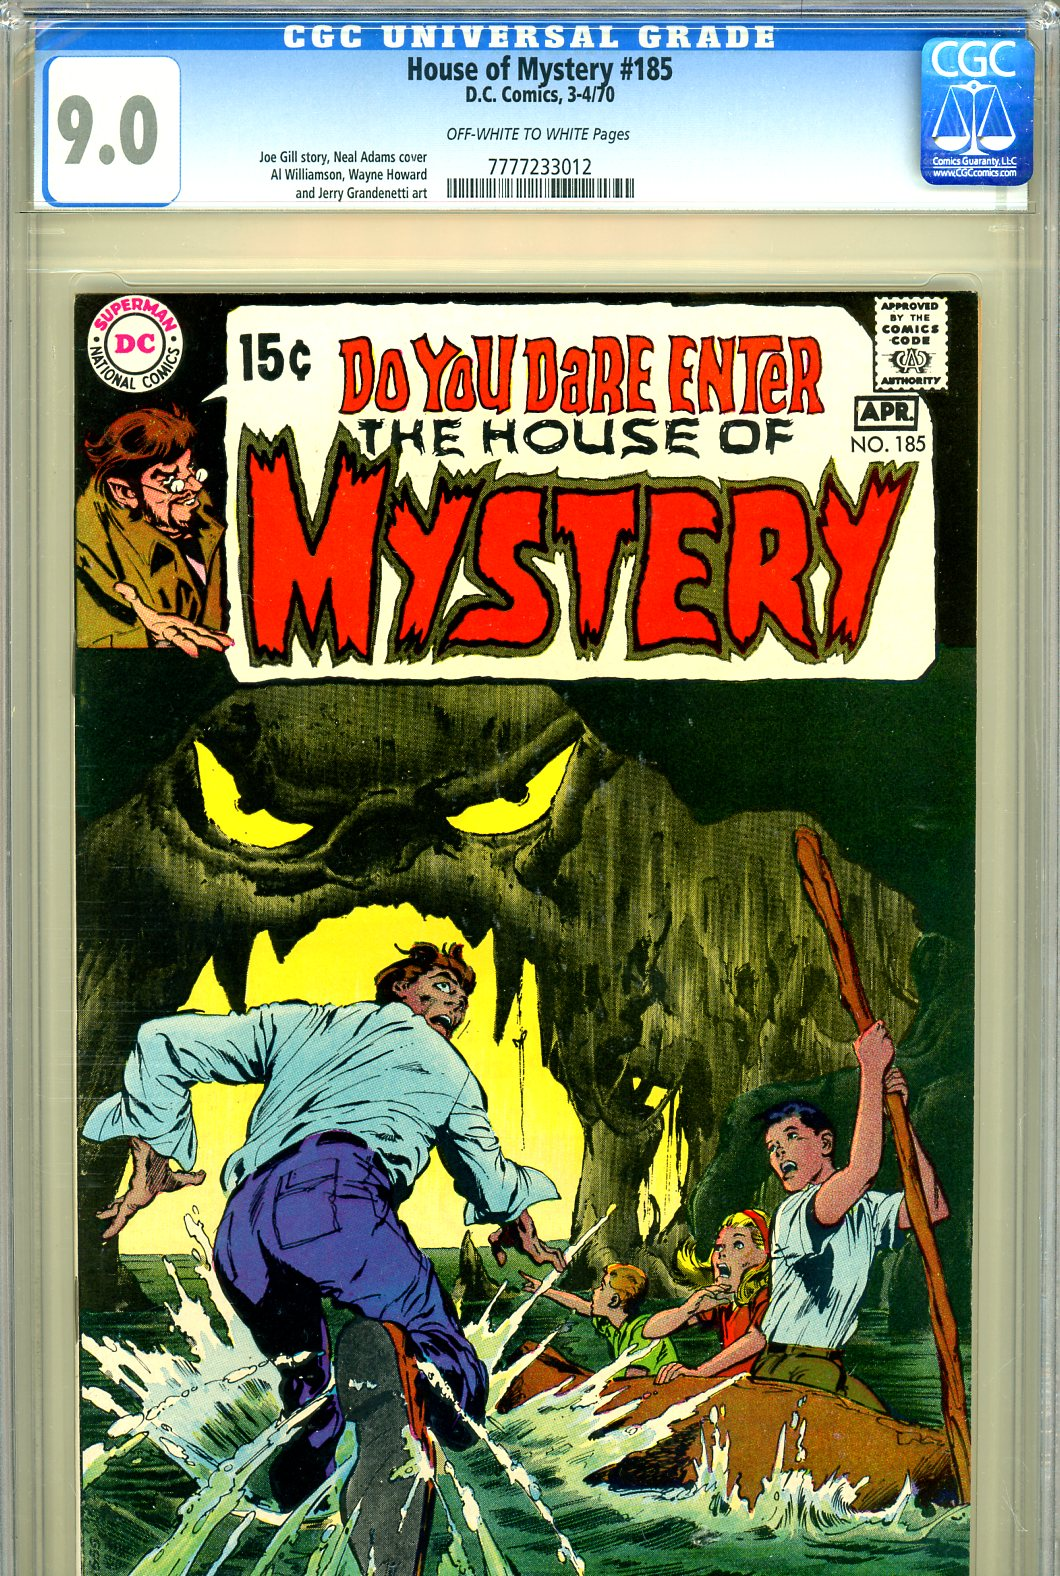 House of Mystery #185 CGC 9.0 ow/w